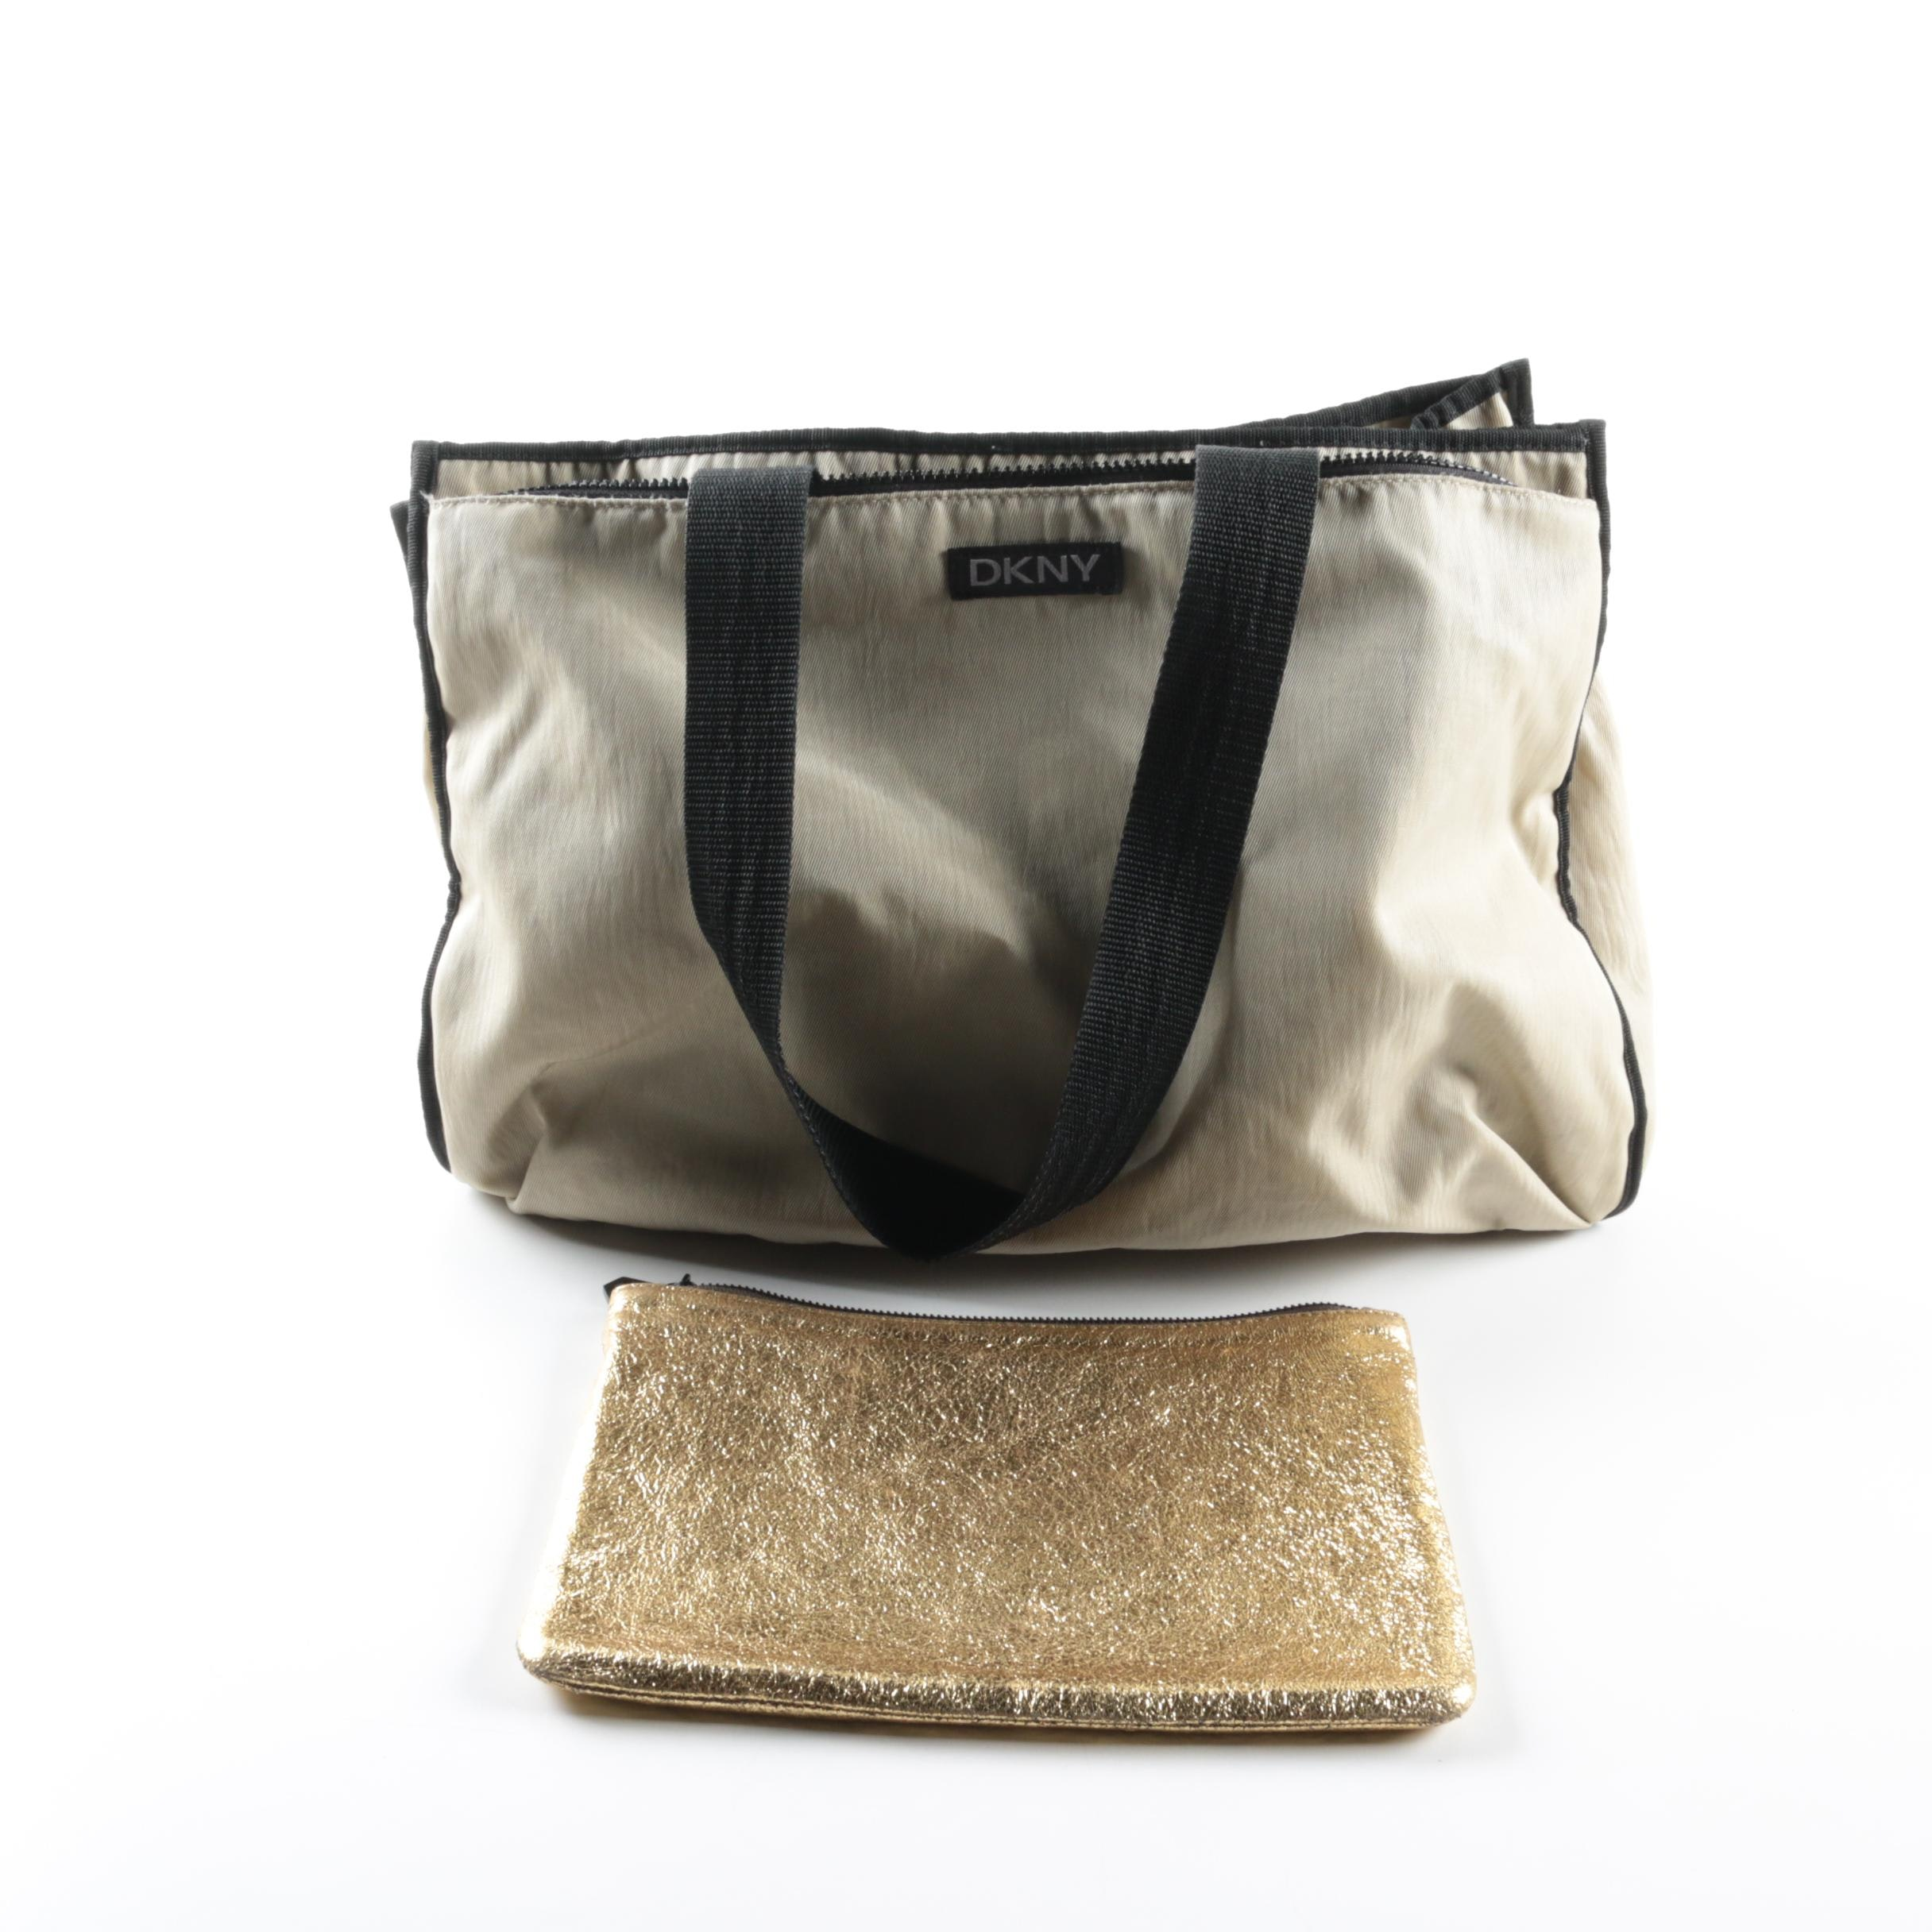 DKNY Nylon Tote Bag and Marc Jacobs Gold Metallic Leather Pouch